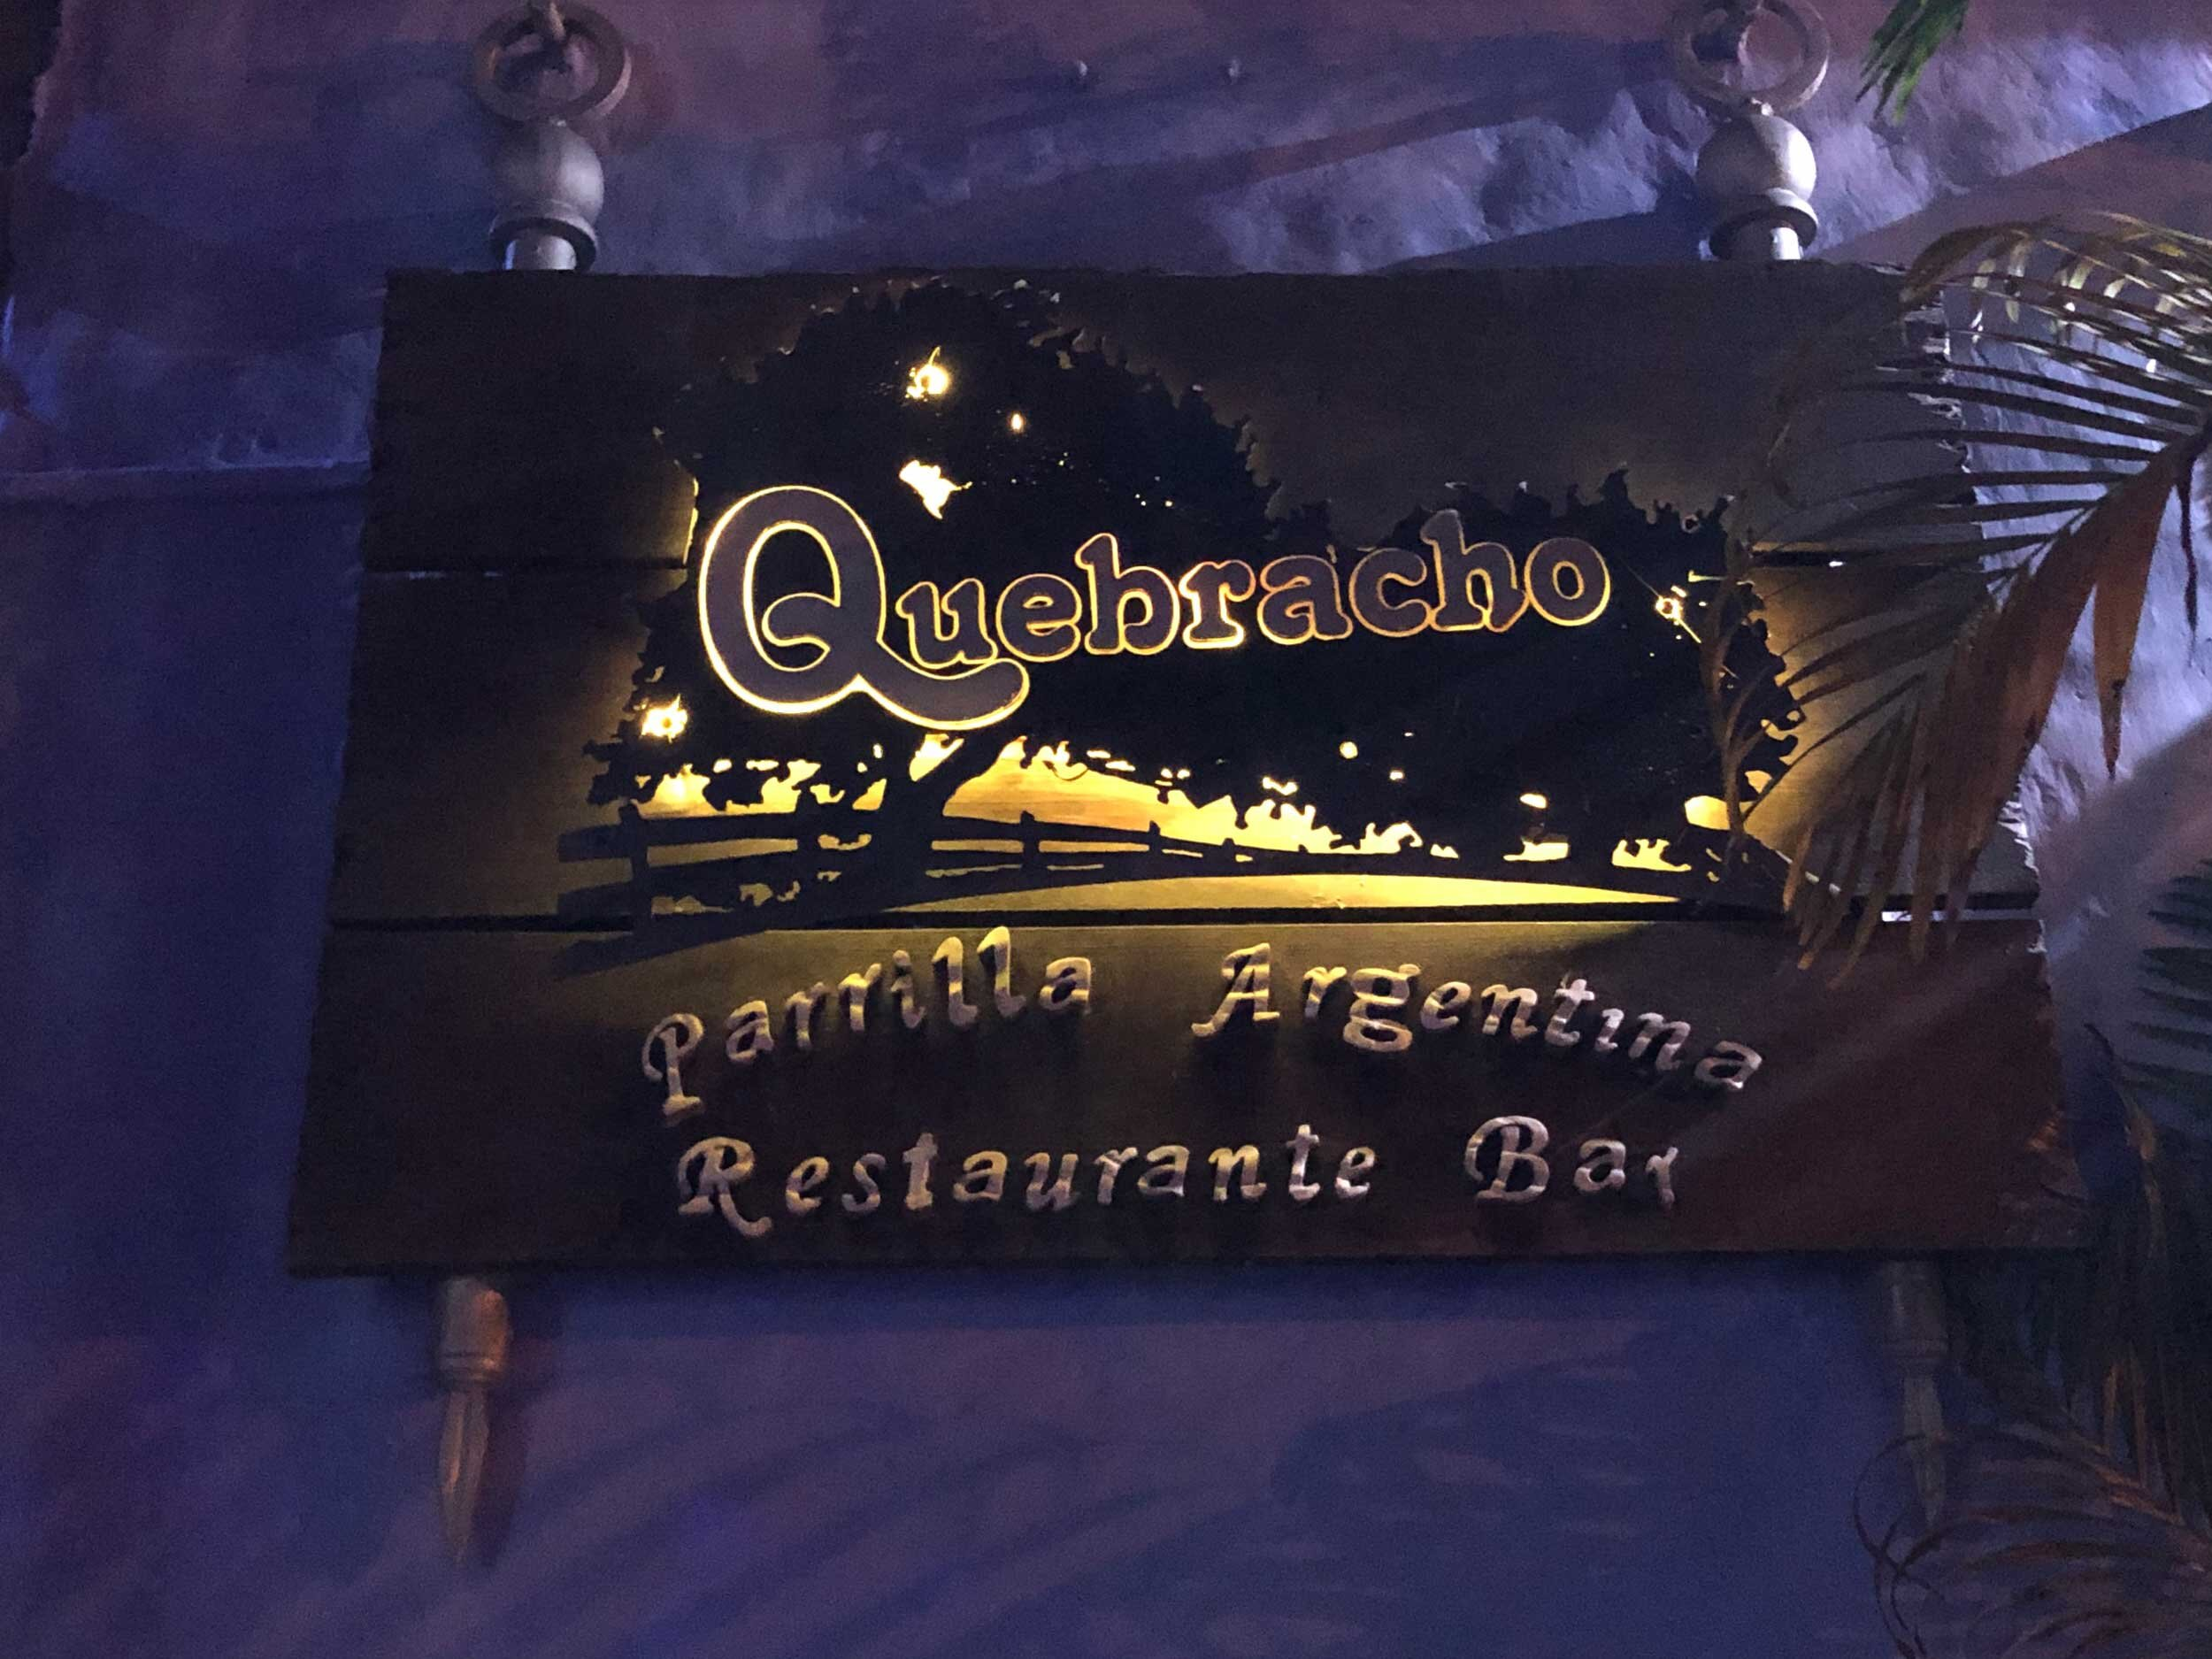 Quebracho is a traditional Argentinian parrilla (grill) with wonderful aromas and food.